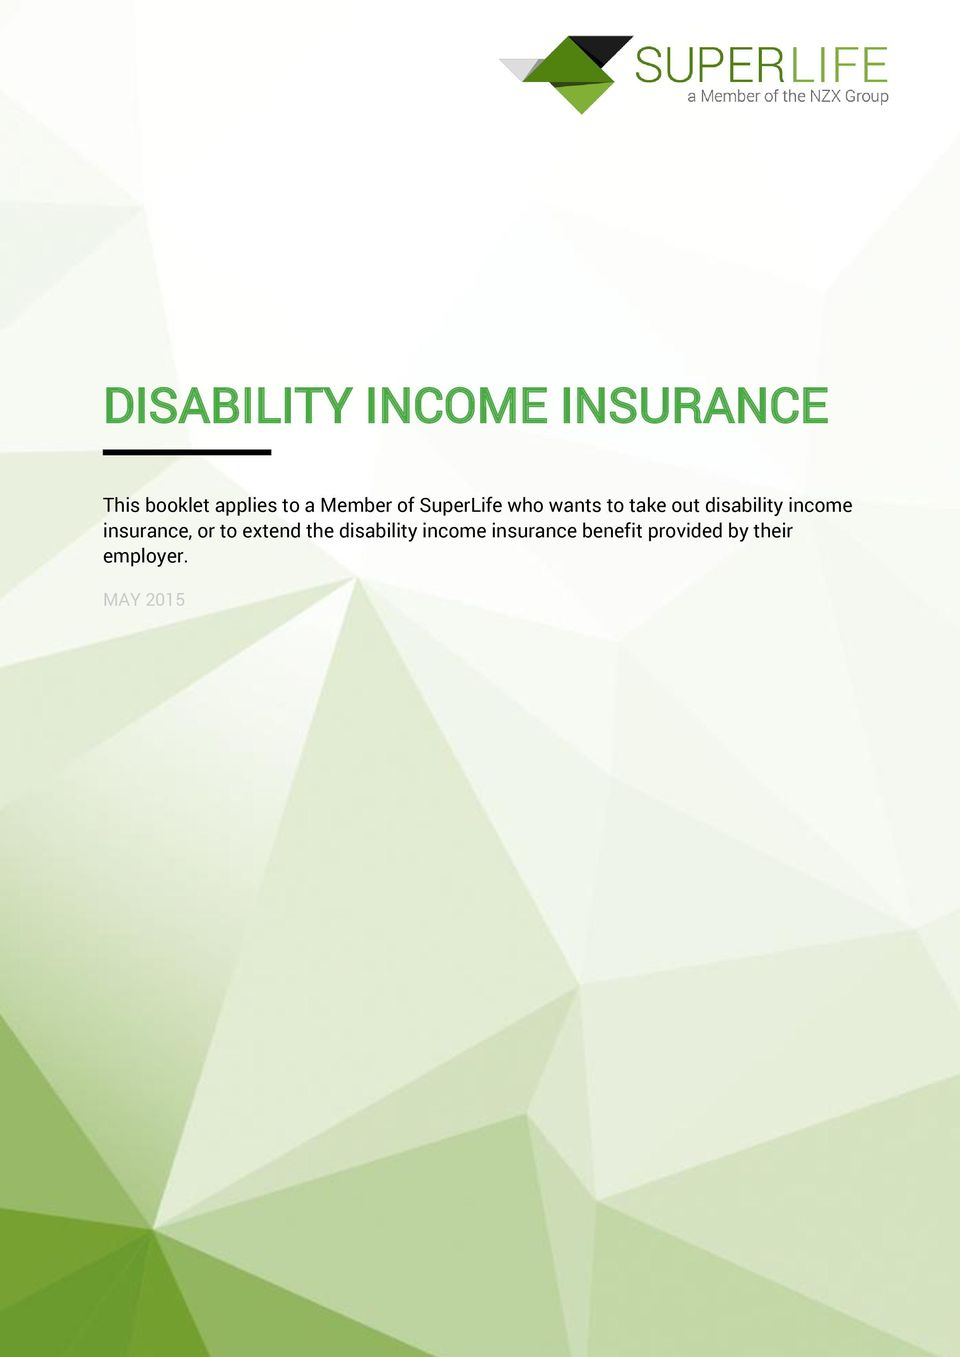 income insurance, or to extend the disability income